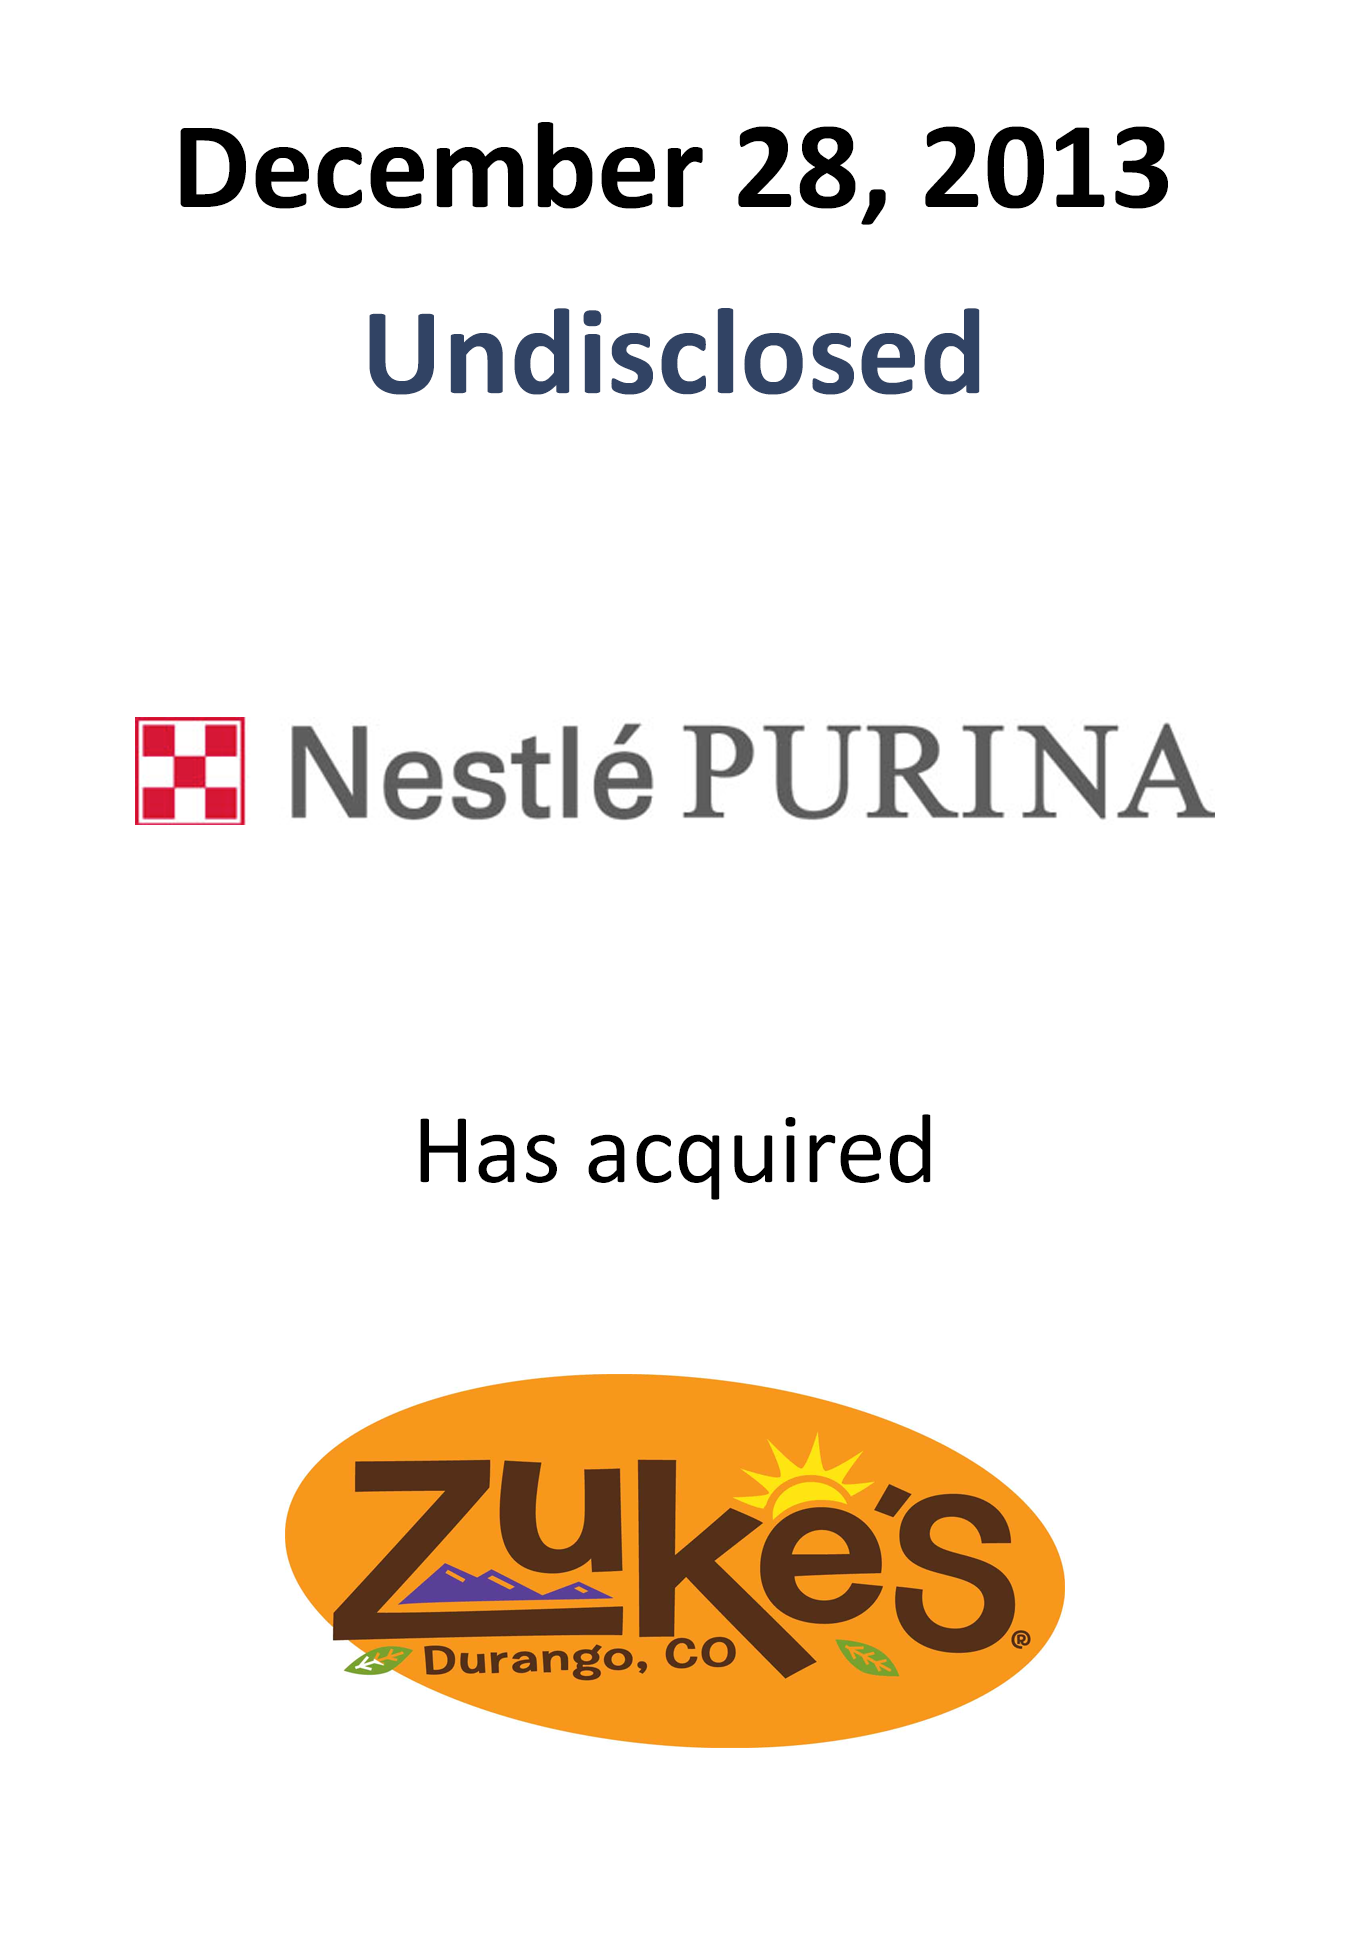 Mergers Amp Acquisitions Nestle Purina Acquires Zuke S